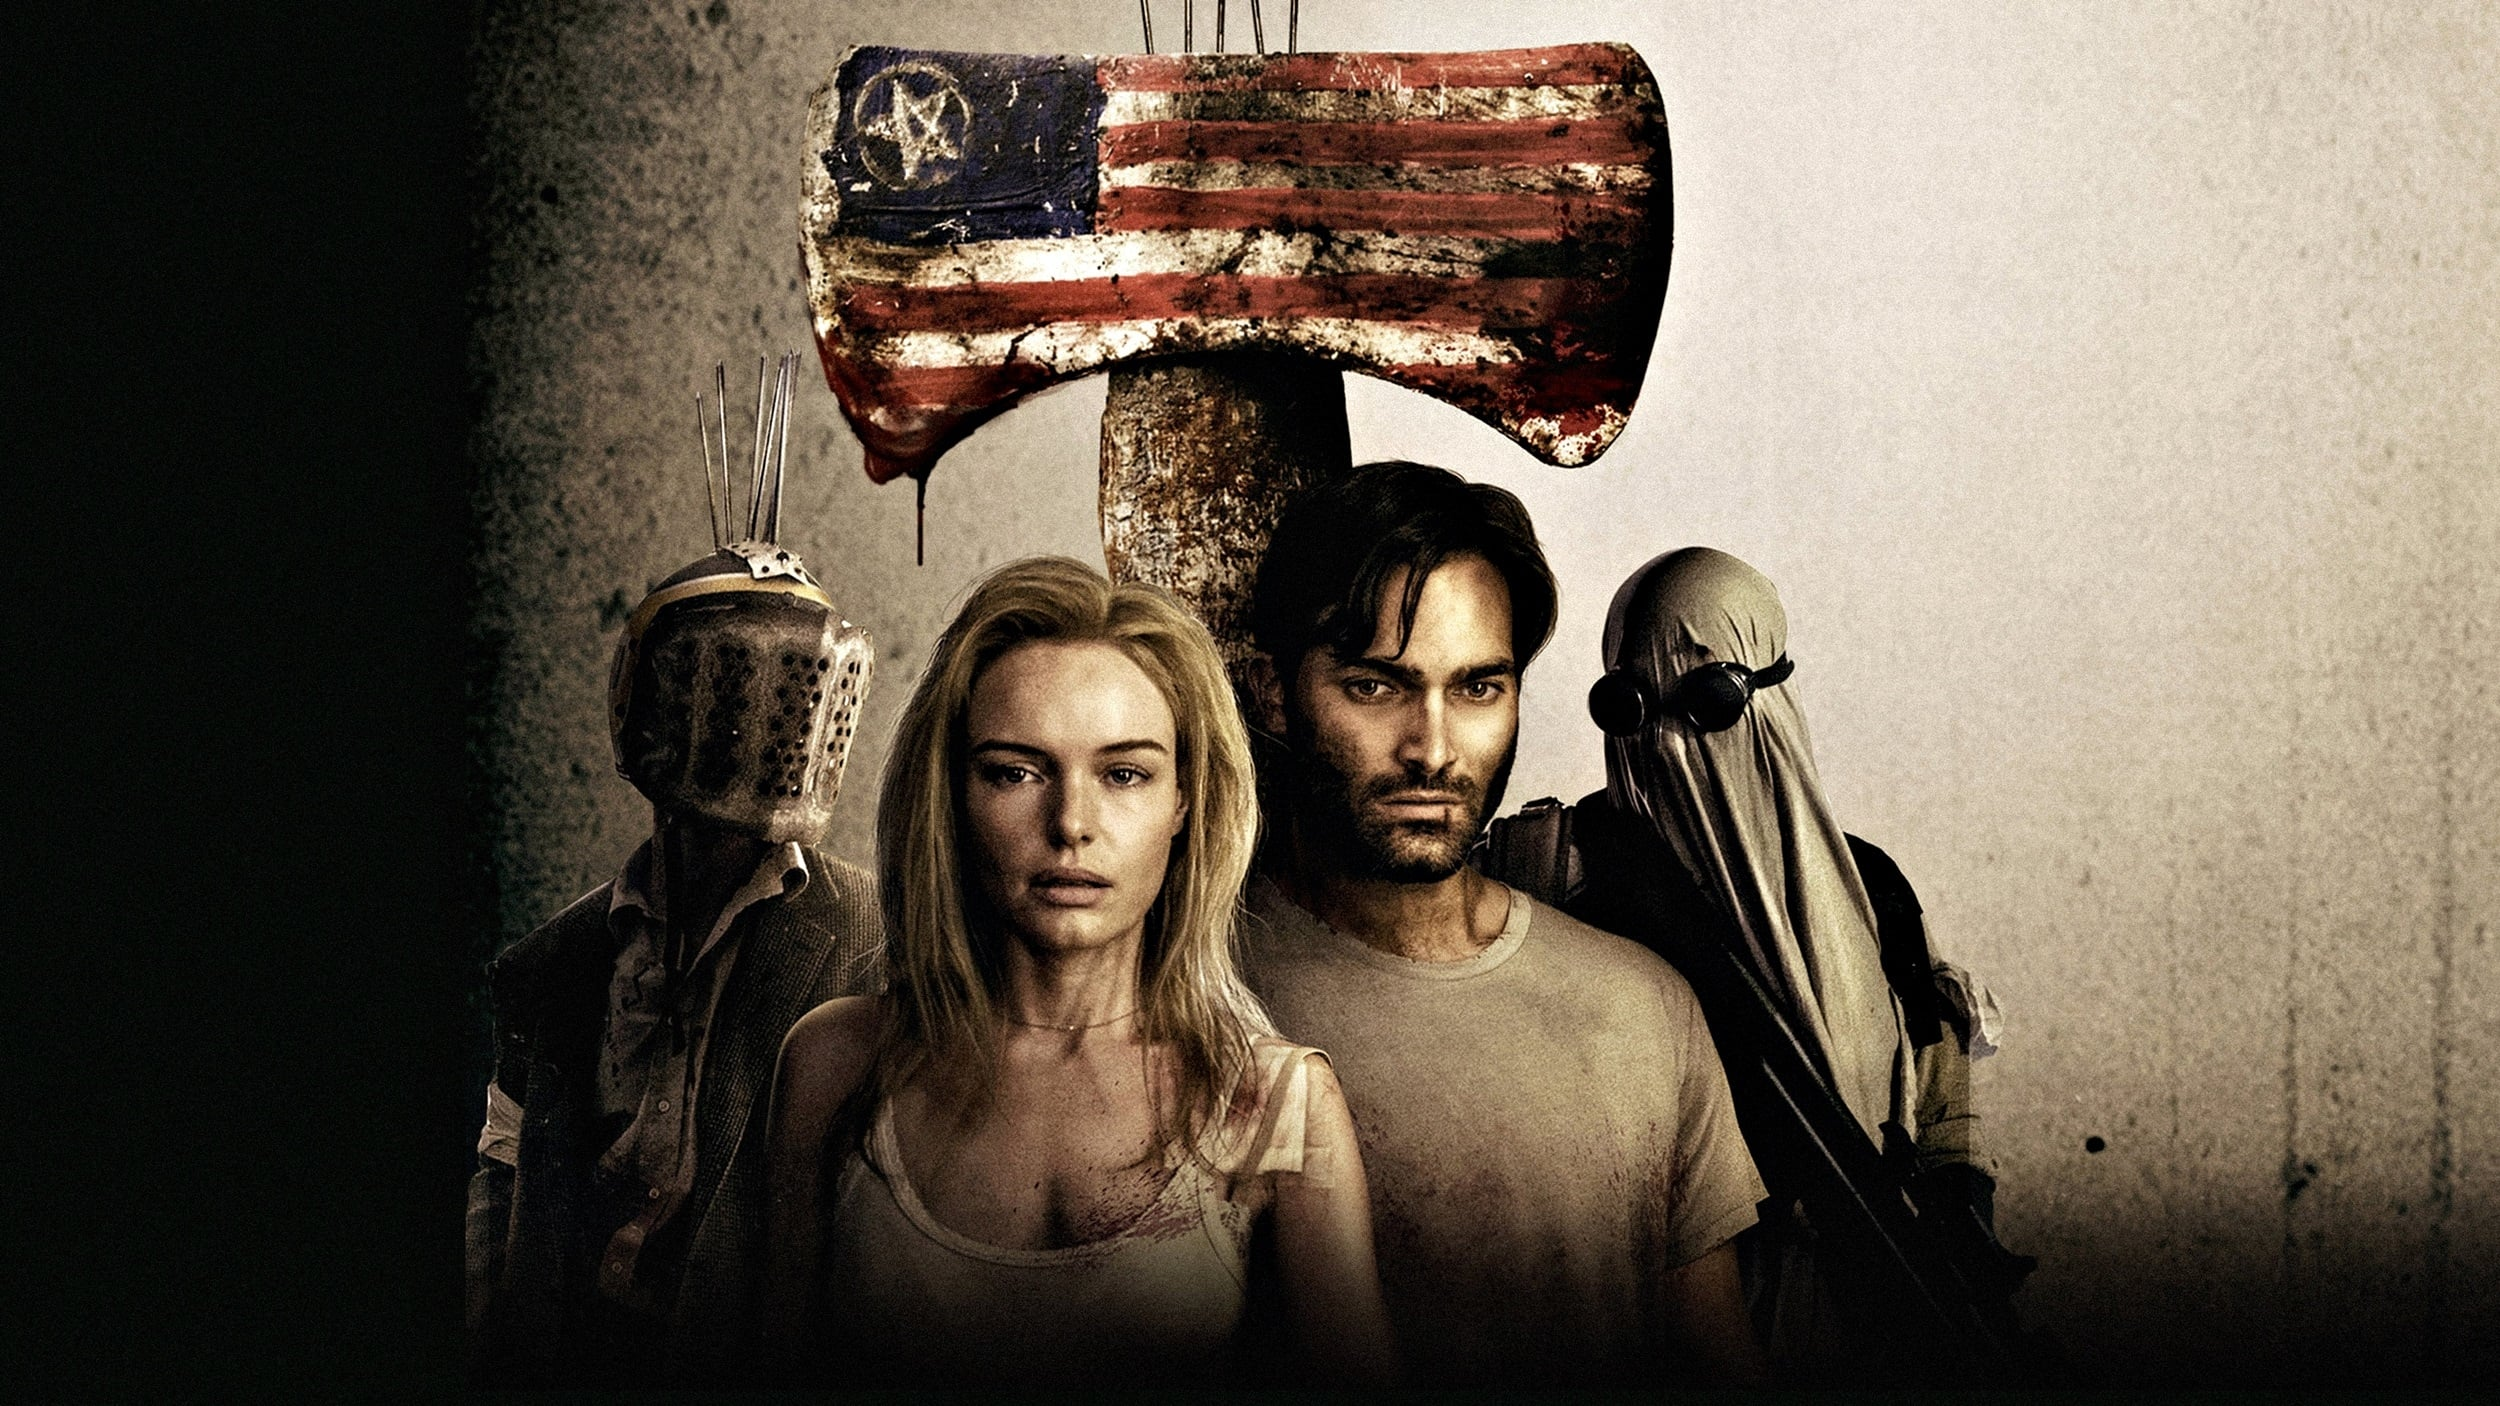 Regarder The Domestics en streaming gratuit